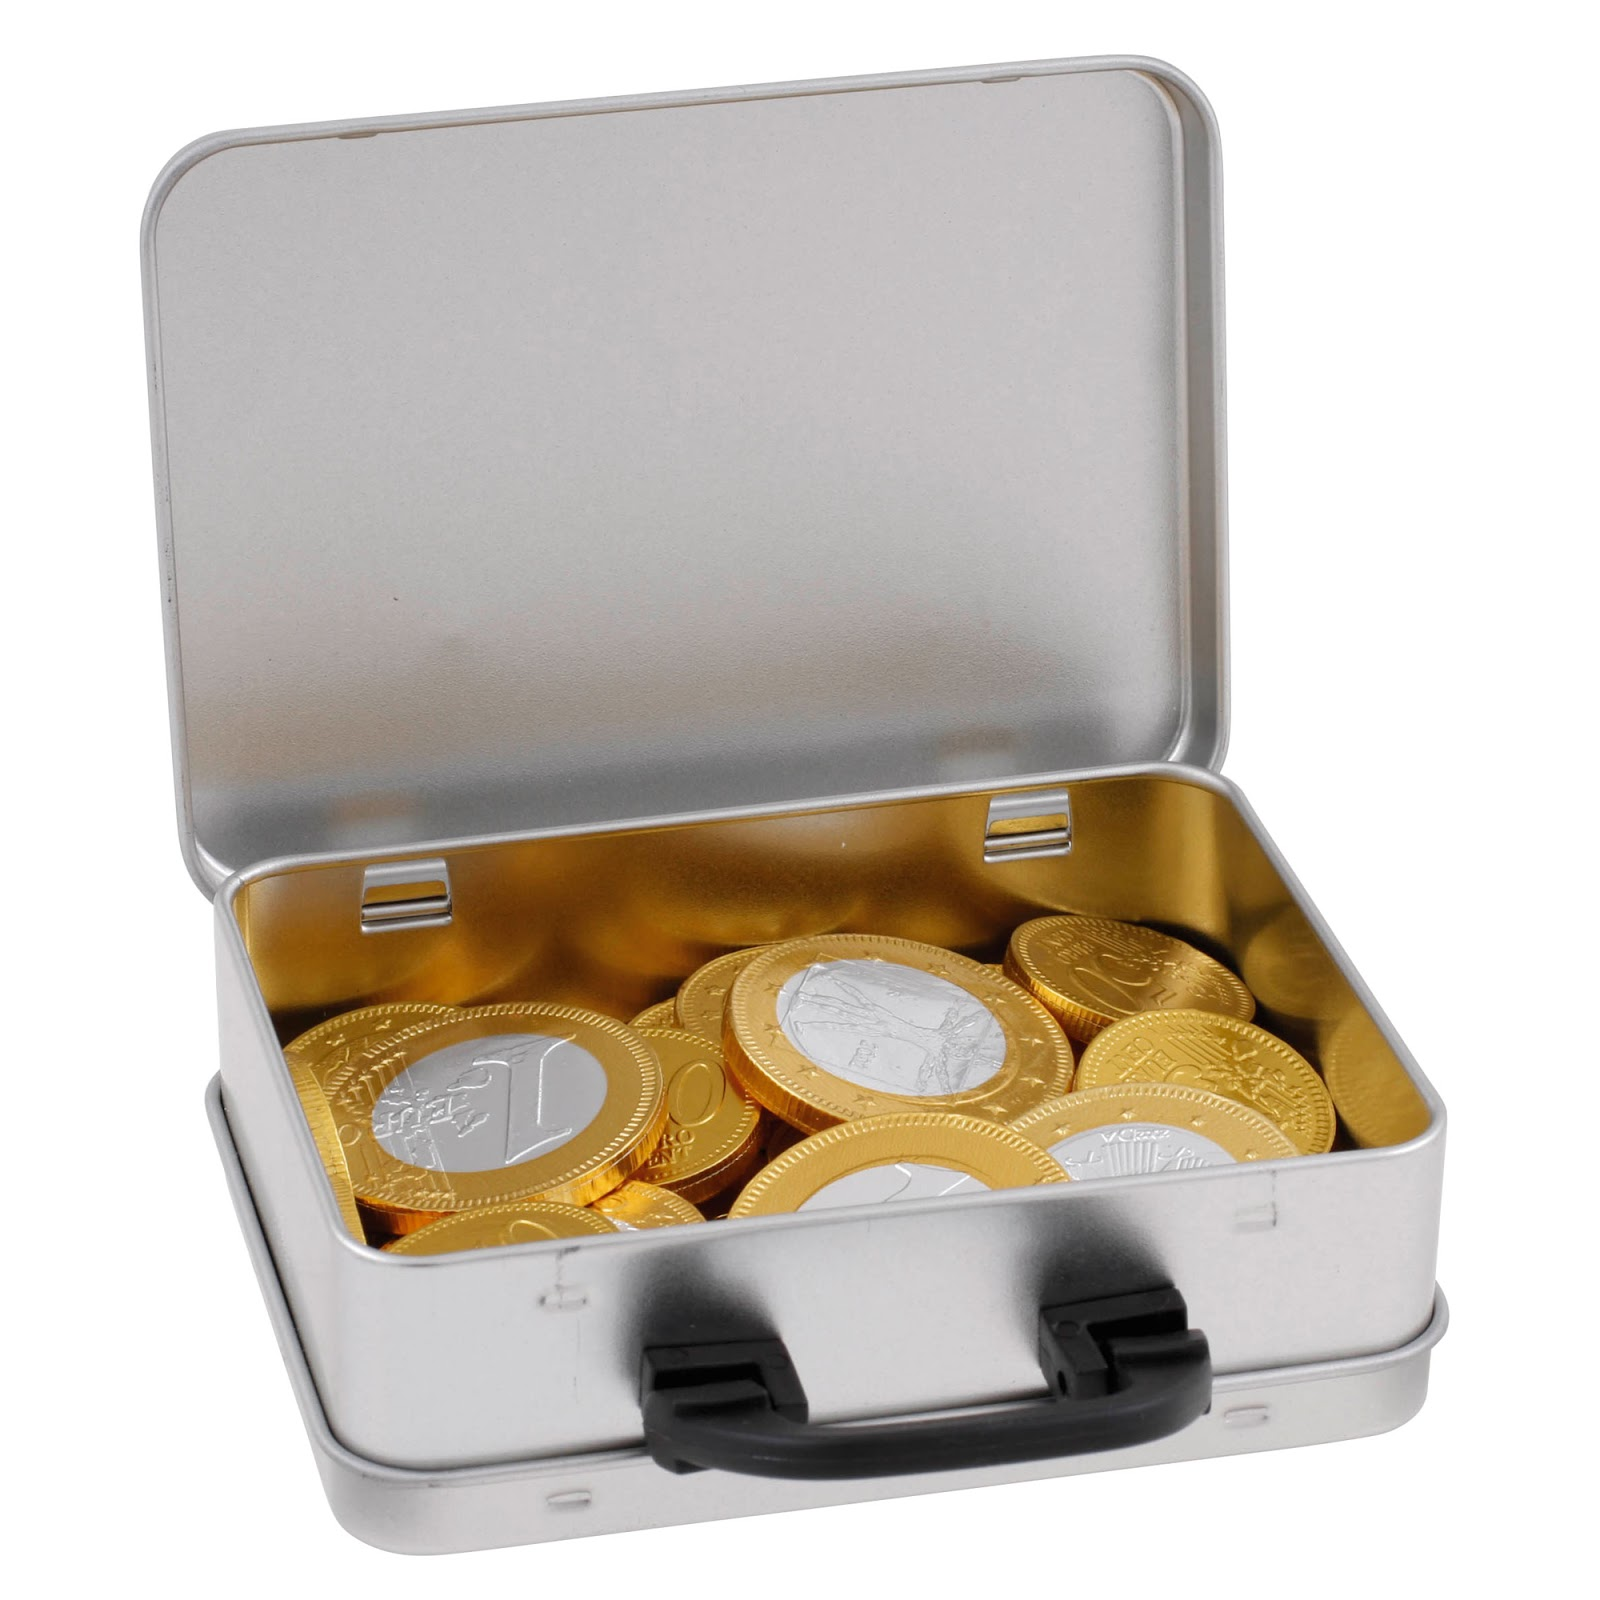 Suitcase Sweet Tins - Chocolate Coins